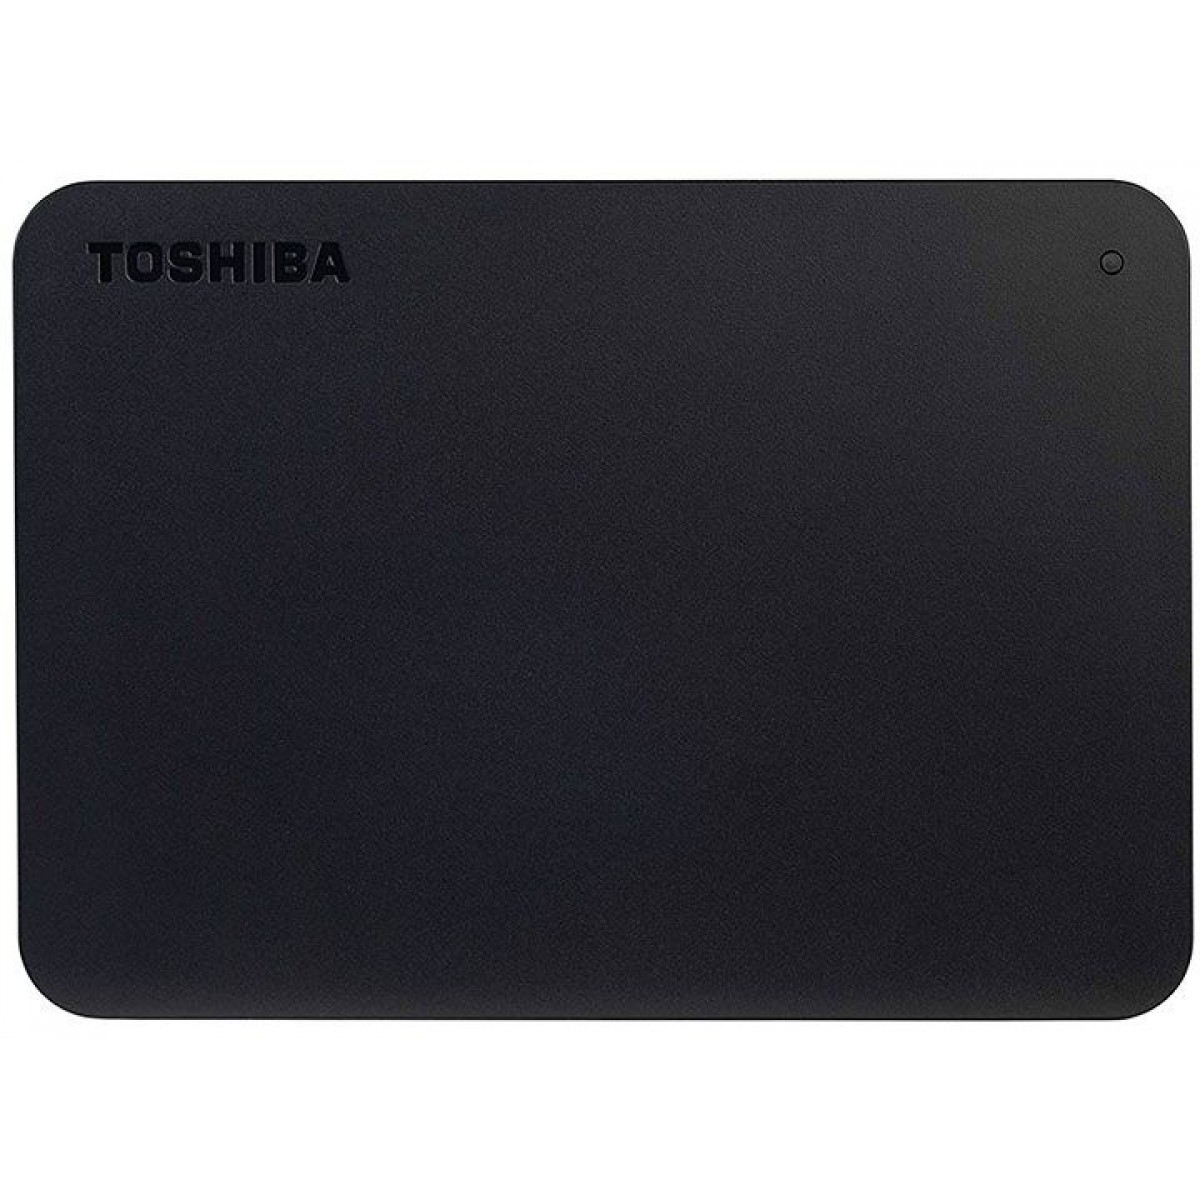 HD Externo Portátil Toshiba Canvio Advance 4TB, USB 3.0, Black, HDTB440XK3CA